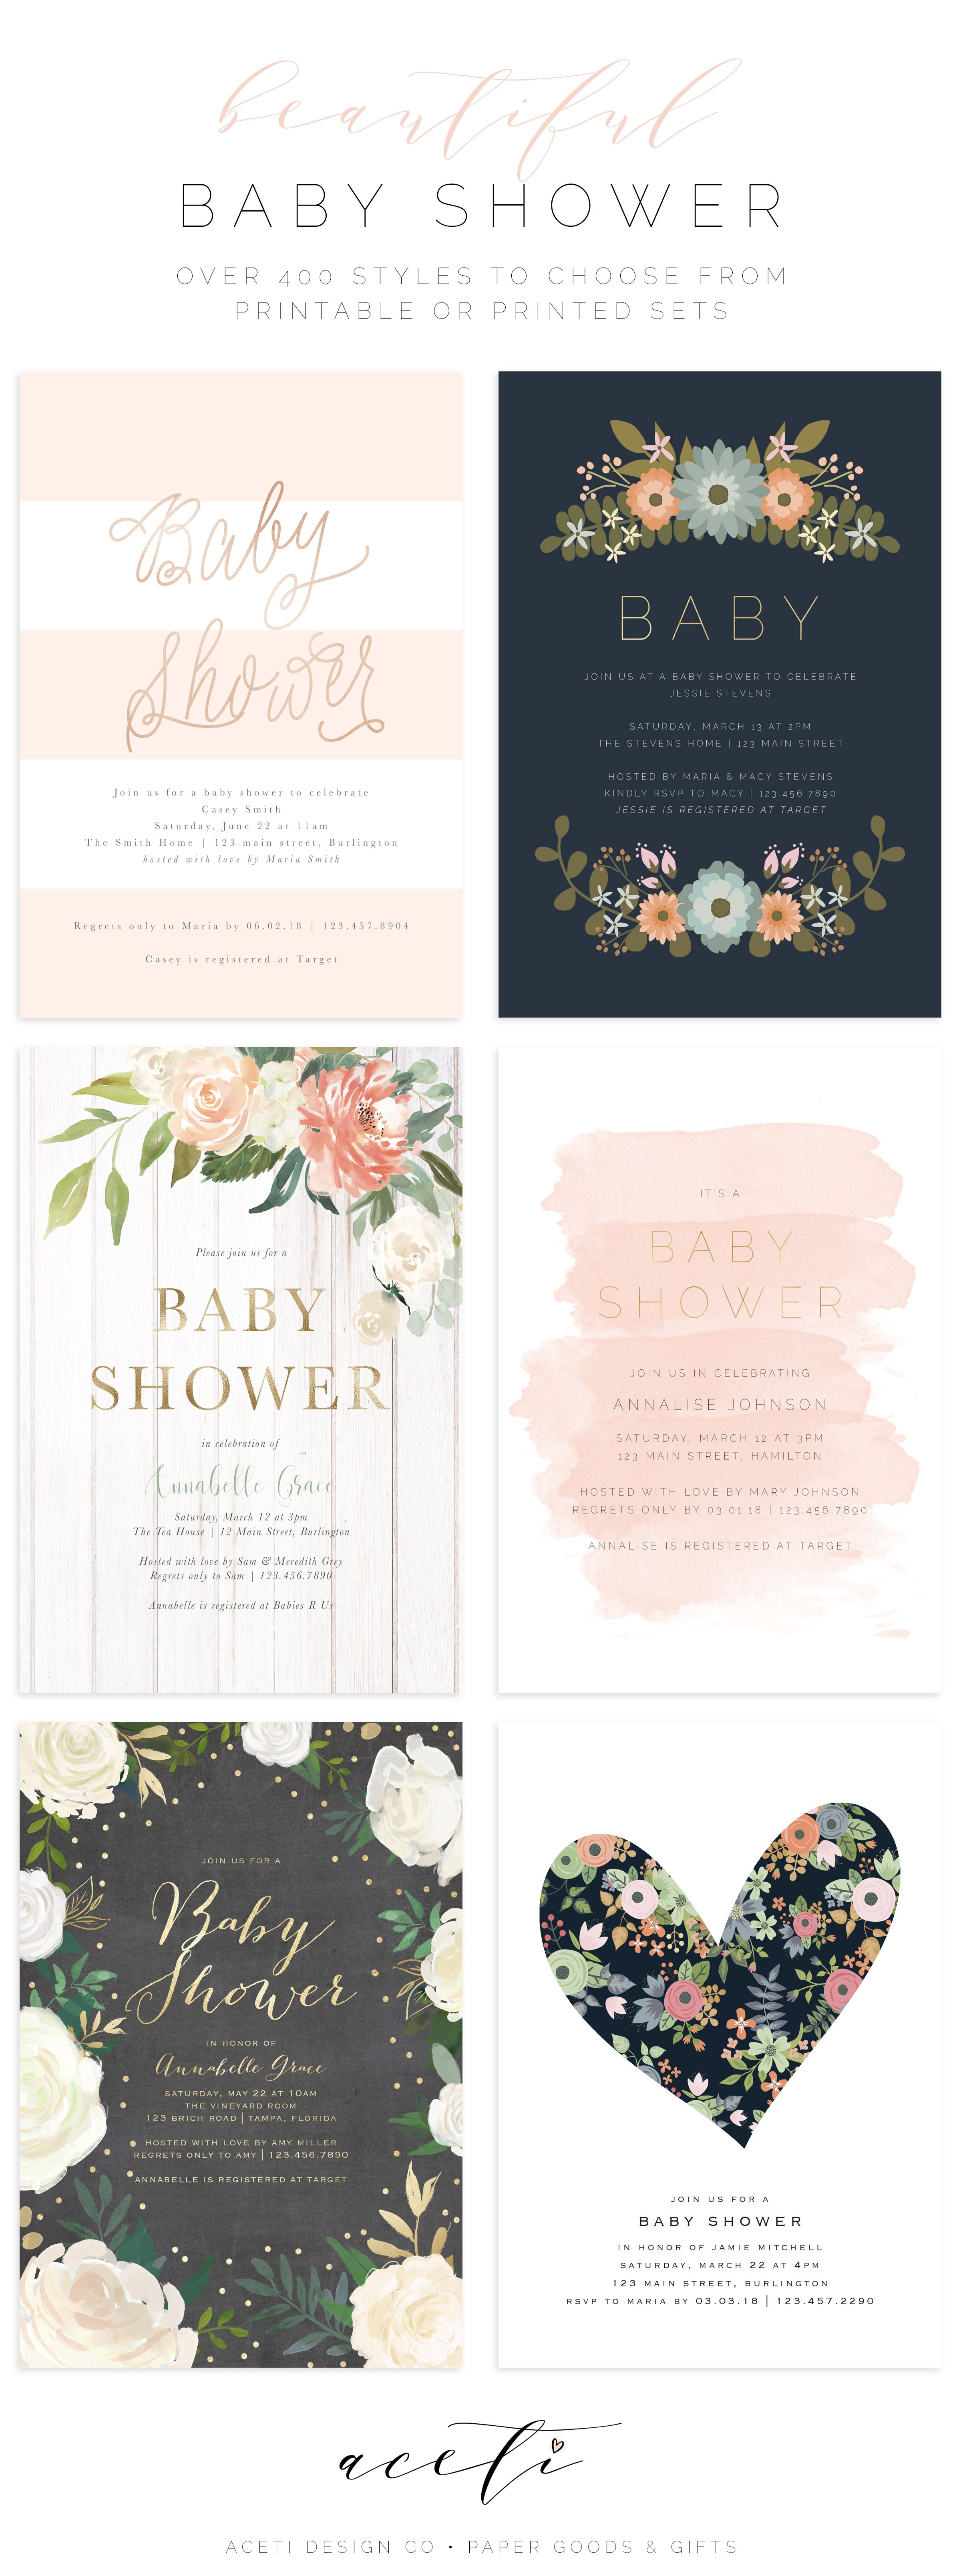 Browse hundreds of beautiful baby shower invitations